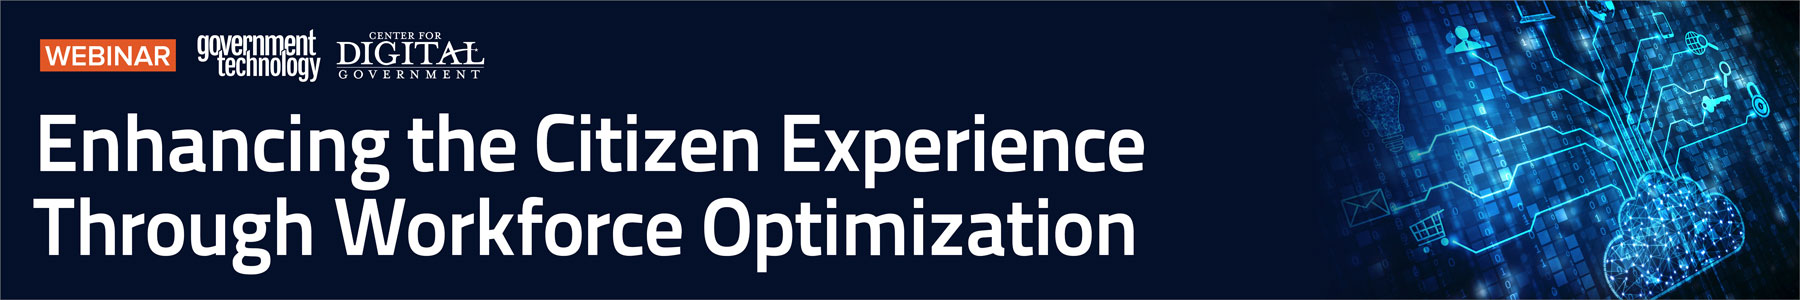 Enhancing the Citizen Experience through Workforce Optimization